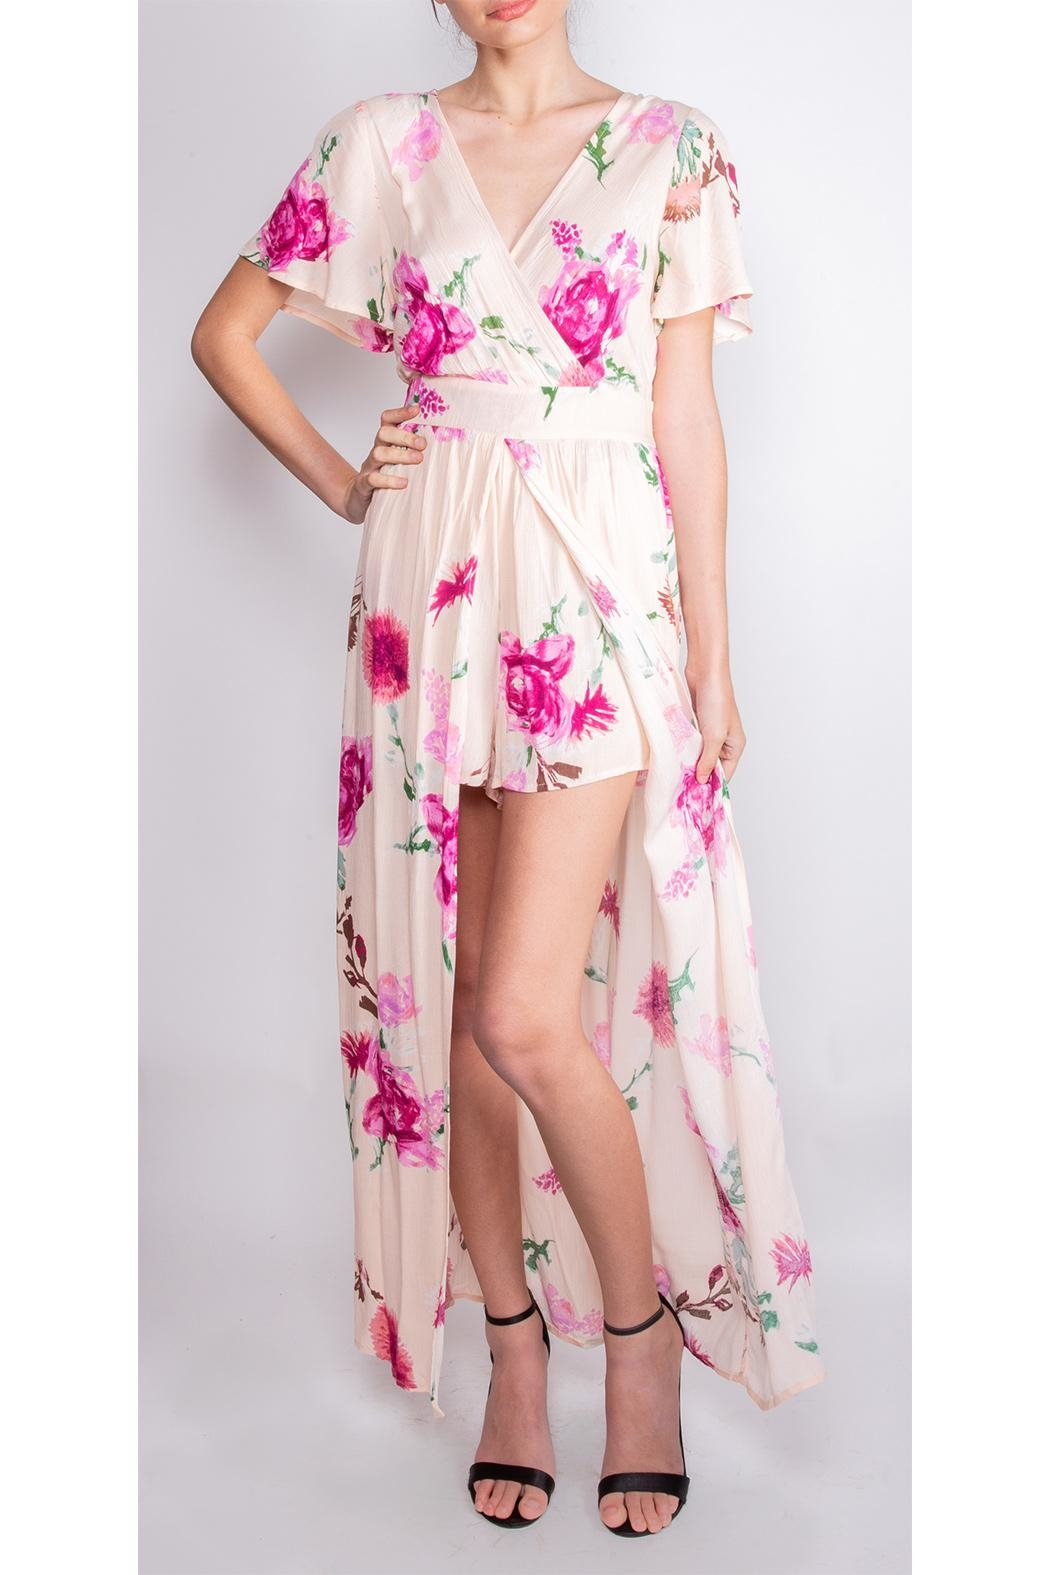 Illa Illa Dream Floral Romper-Dress - Main Image